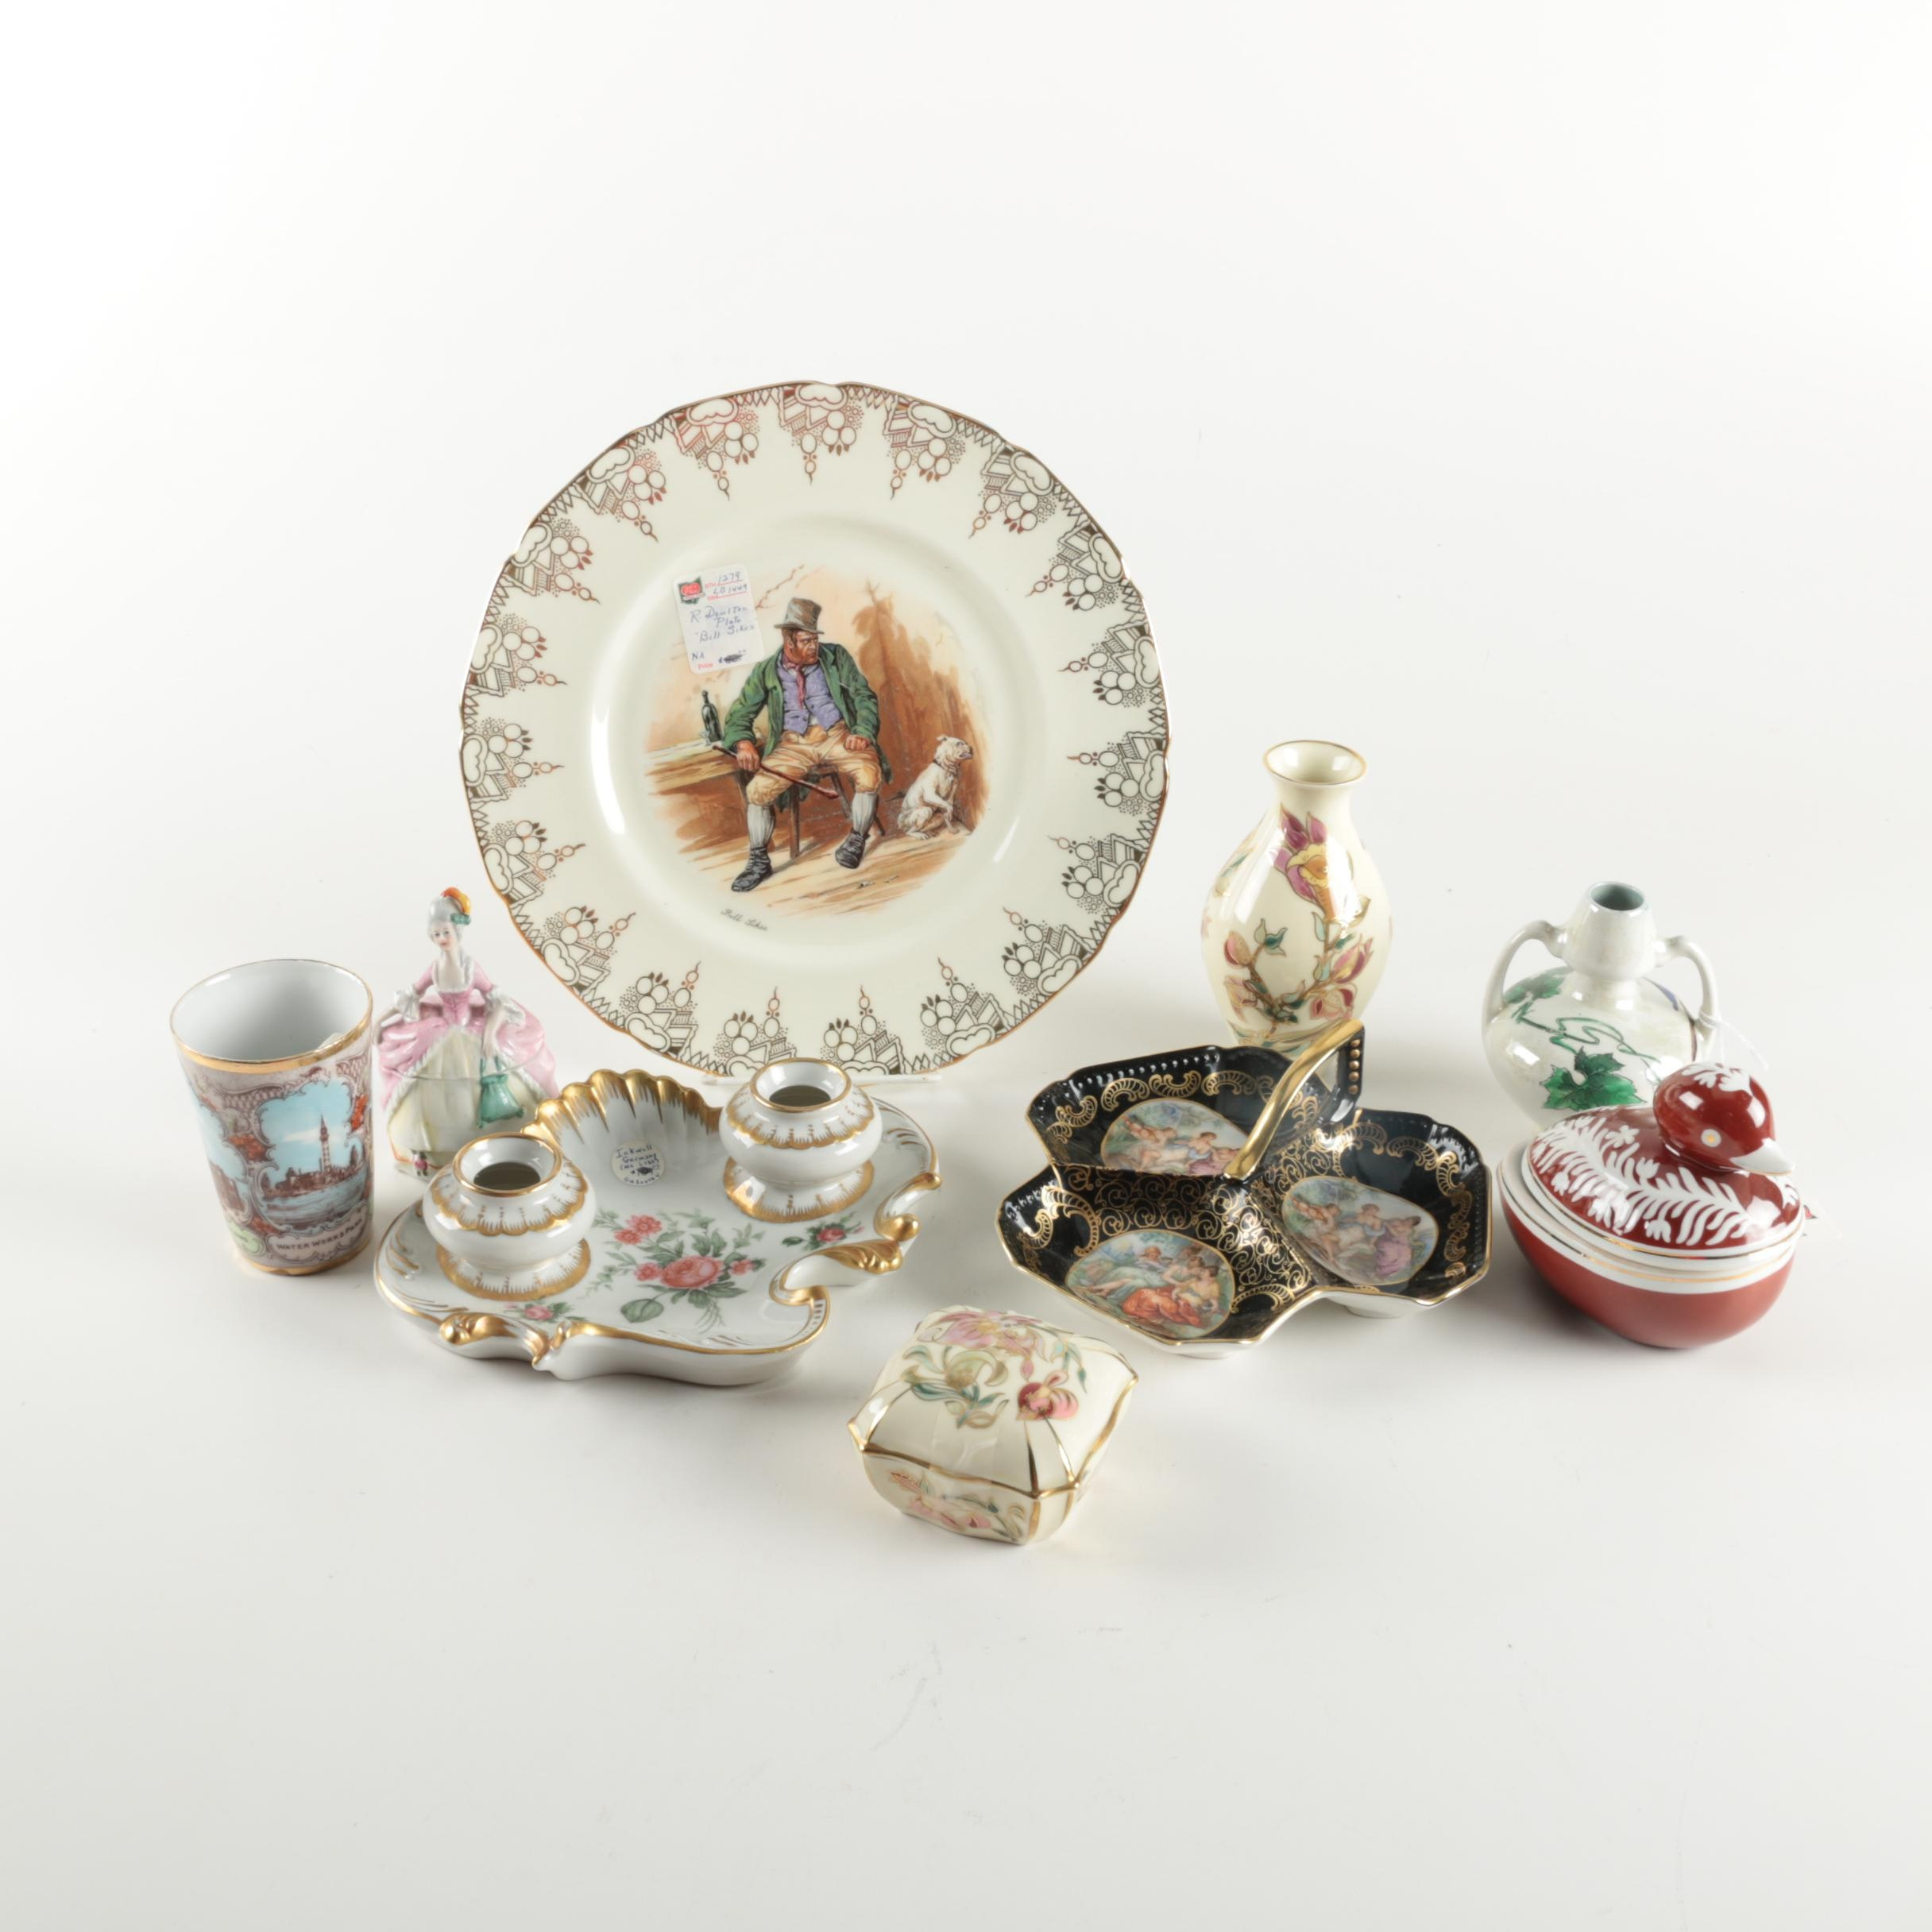 Assortment Antique and Vintage Porcelain